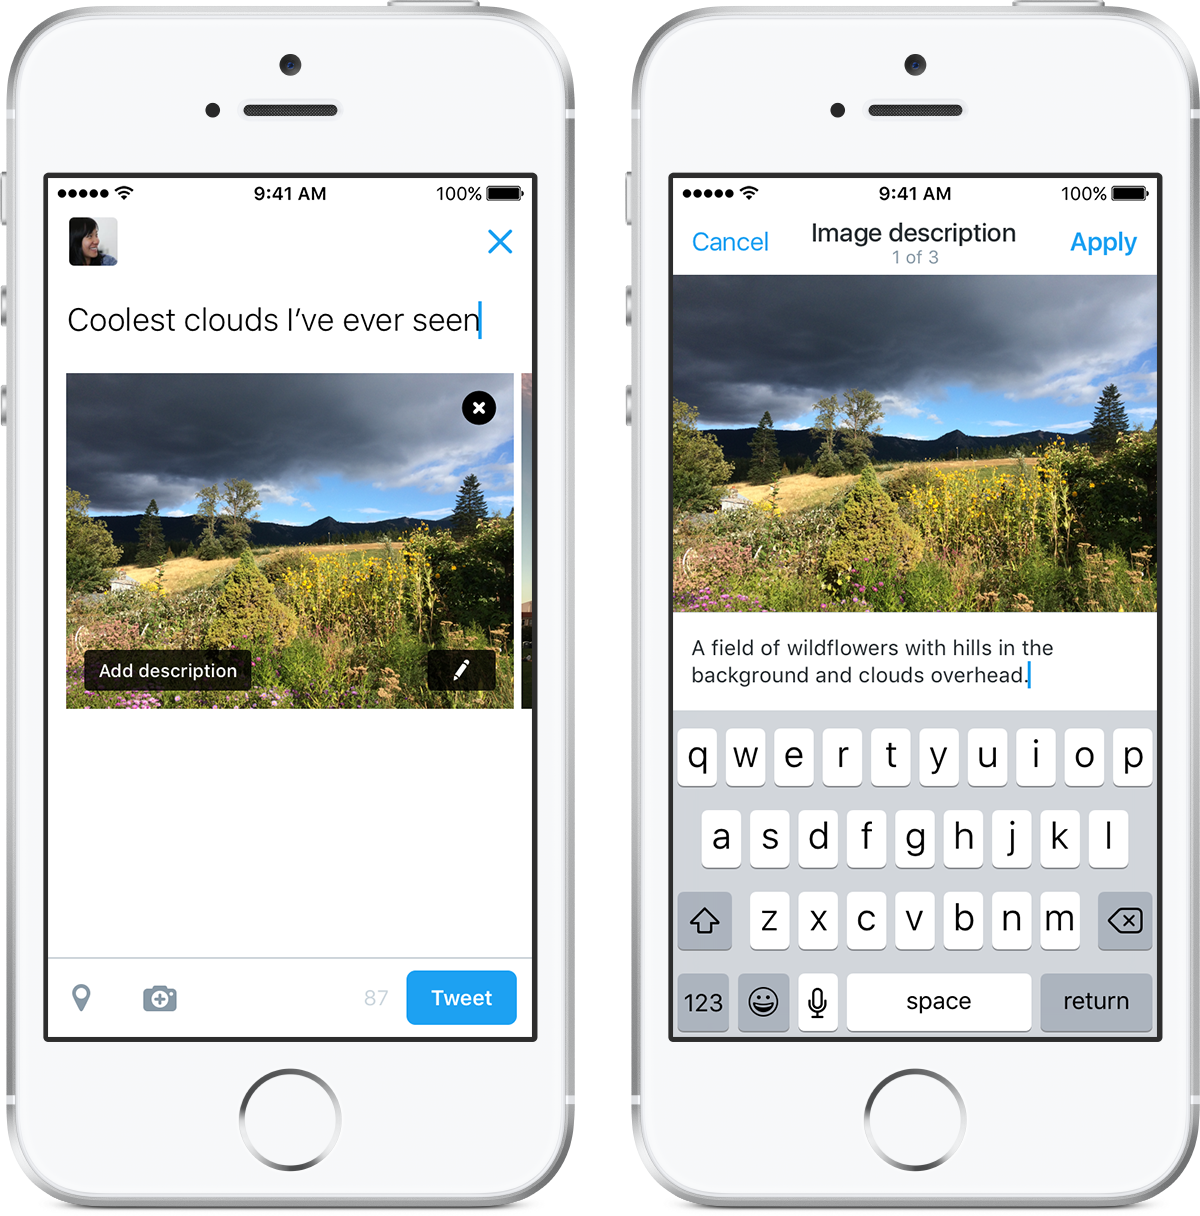 Twitter adds image descriptions to make pictures accessible to the visually impaired